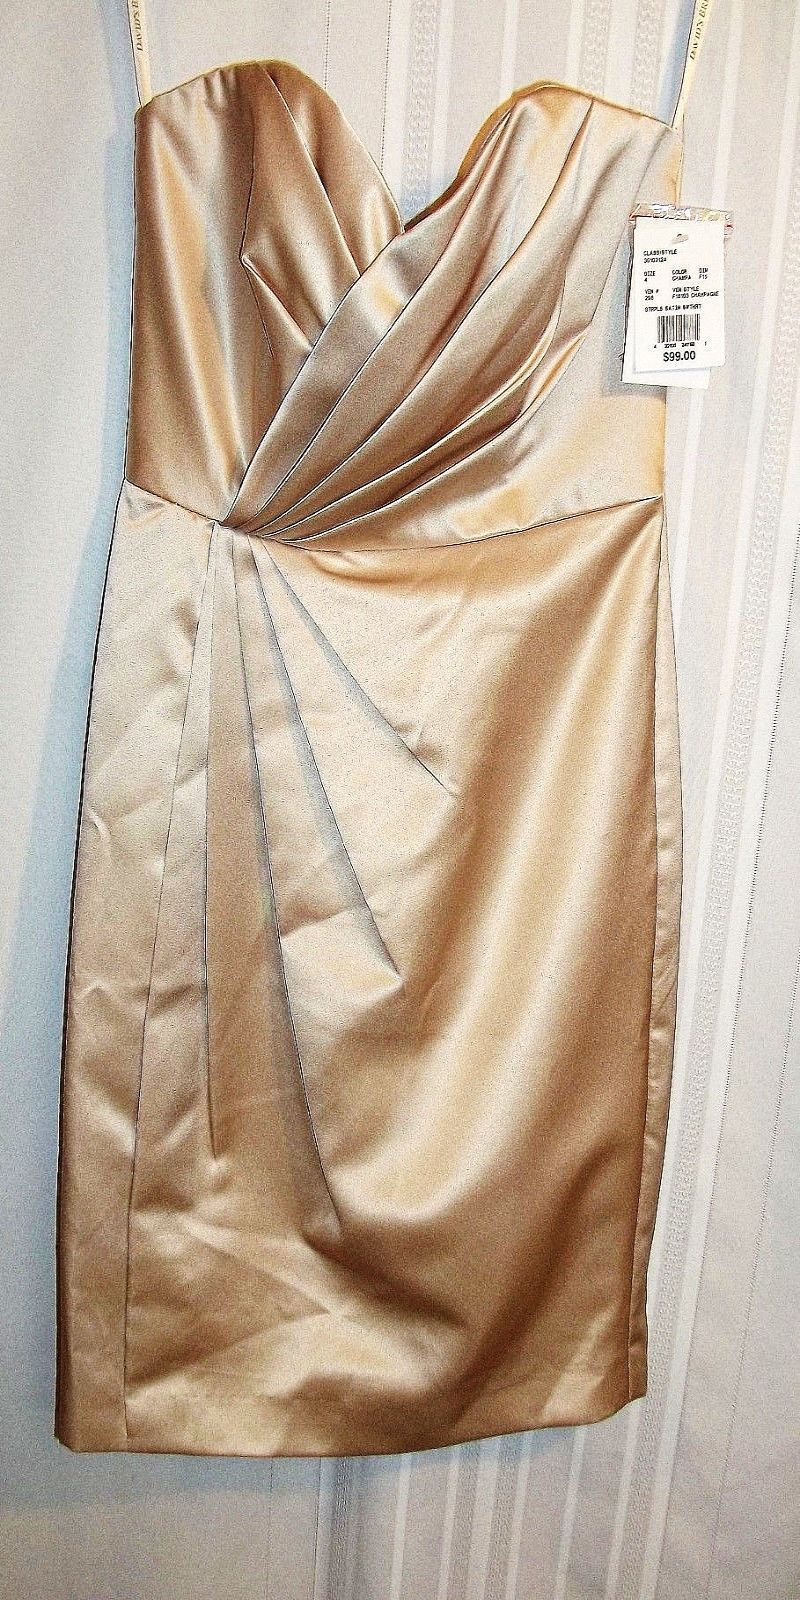 Primary image for NWT David's Bridal Short Strapless Satin Dress w/ Pleating Size 4 Sweetheart